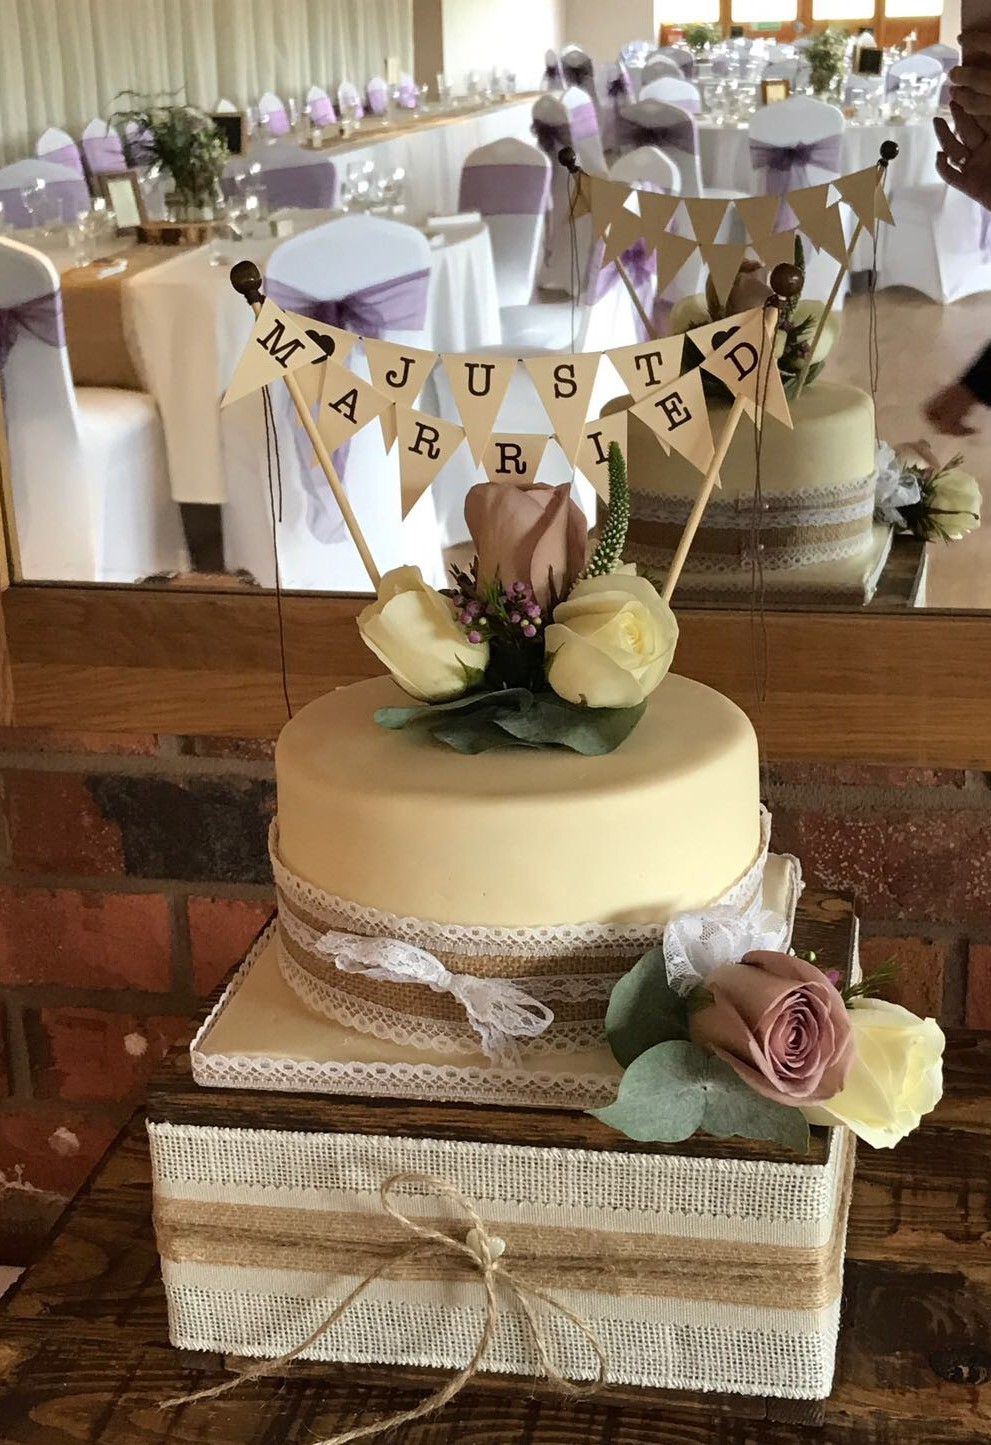 Rustic style Wedding Cake Flowers 3